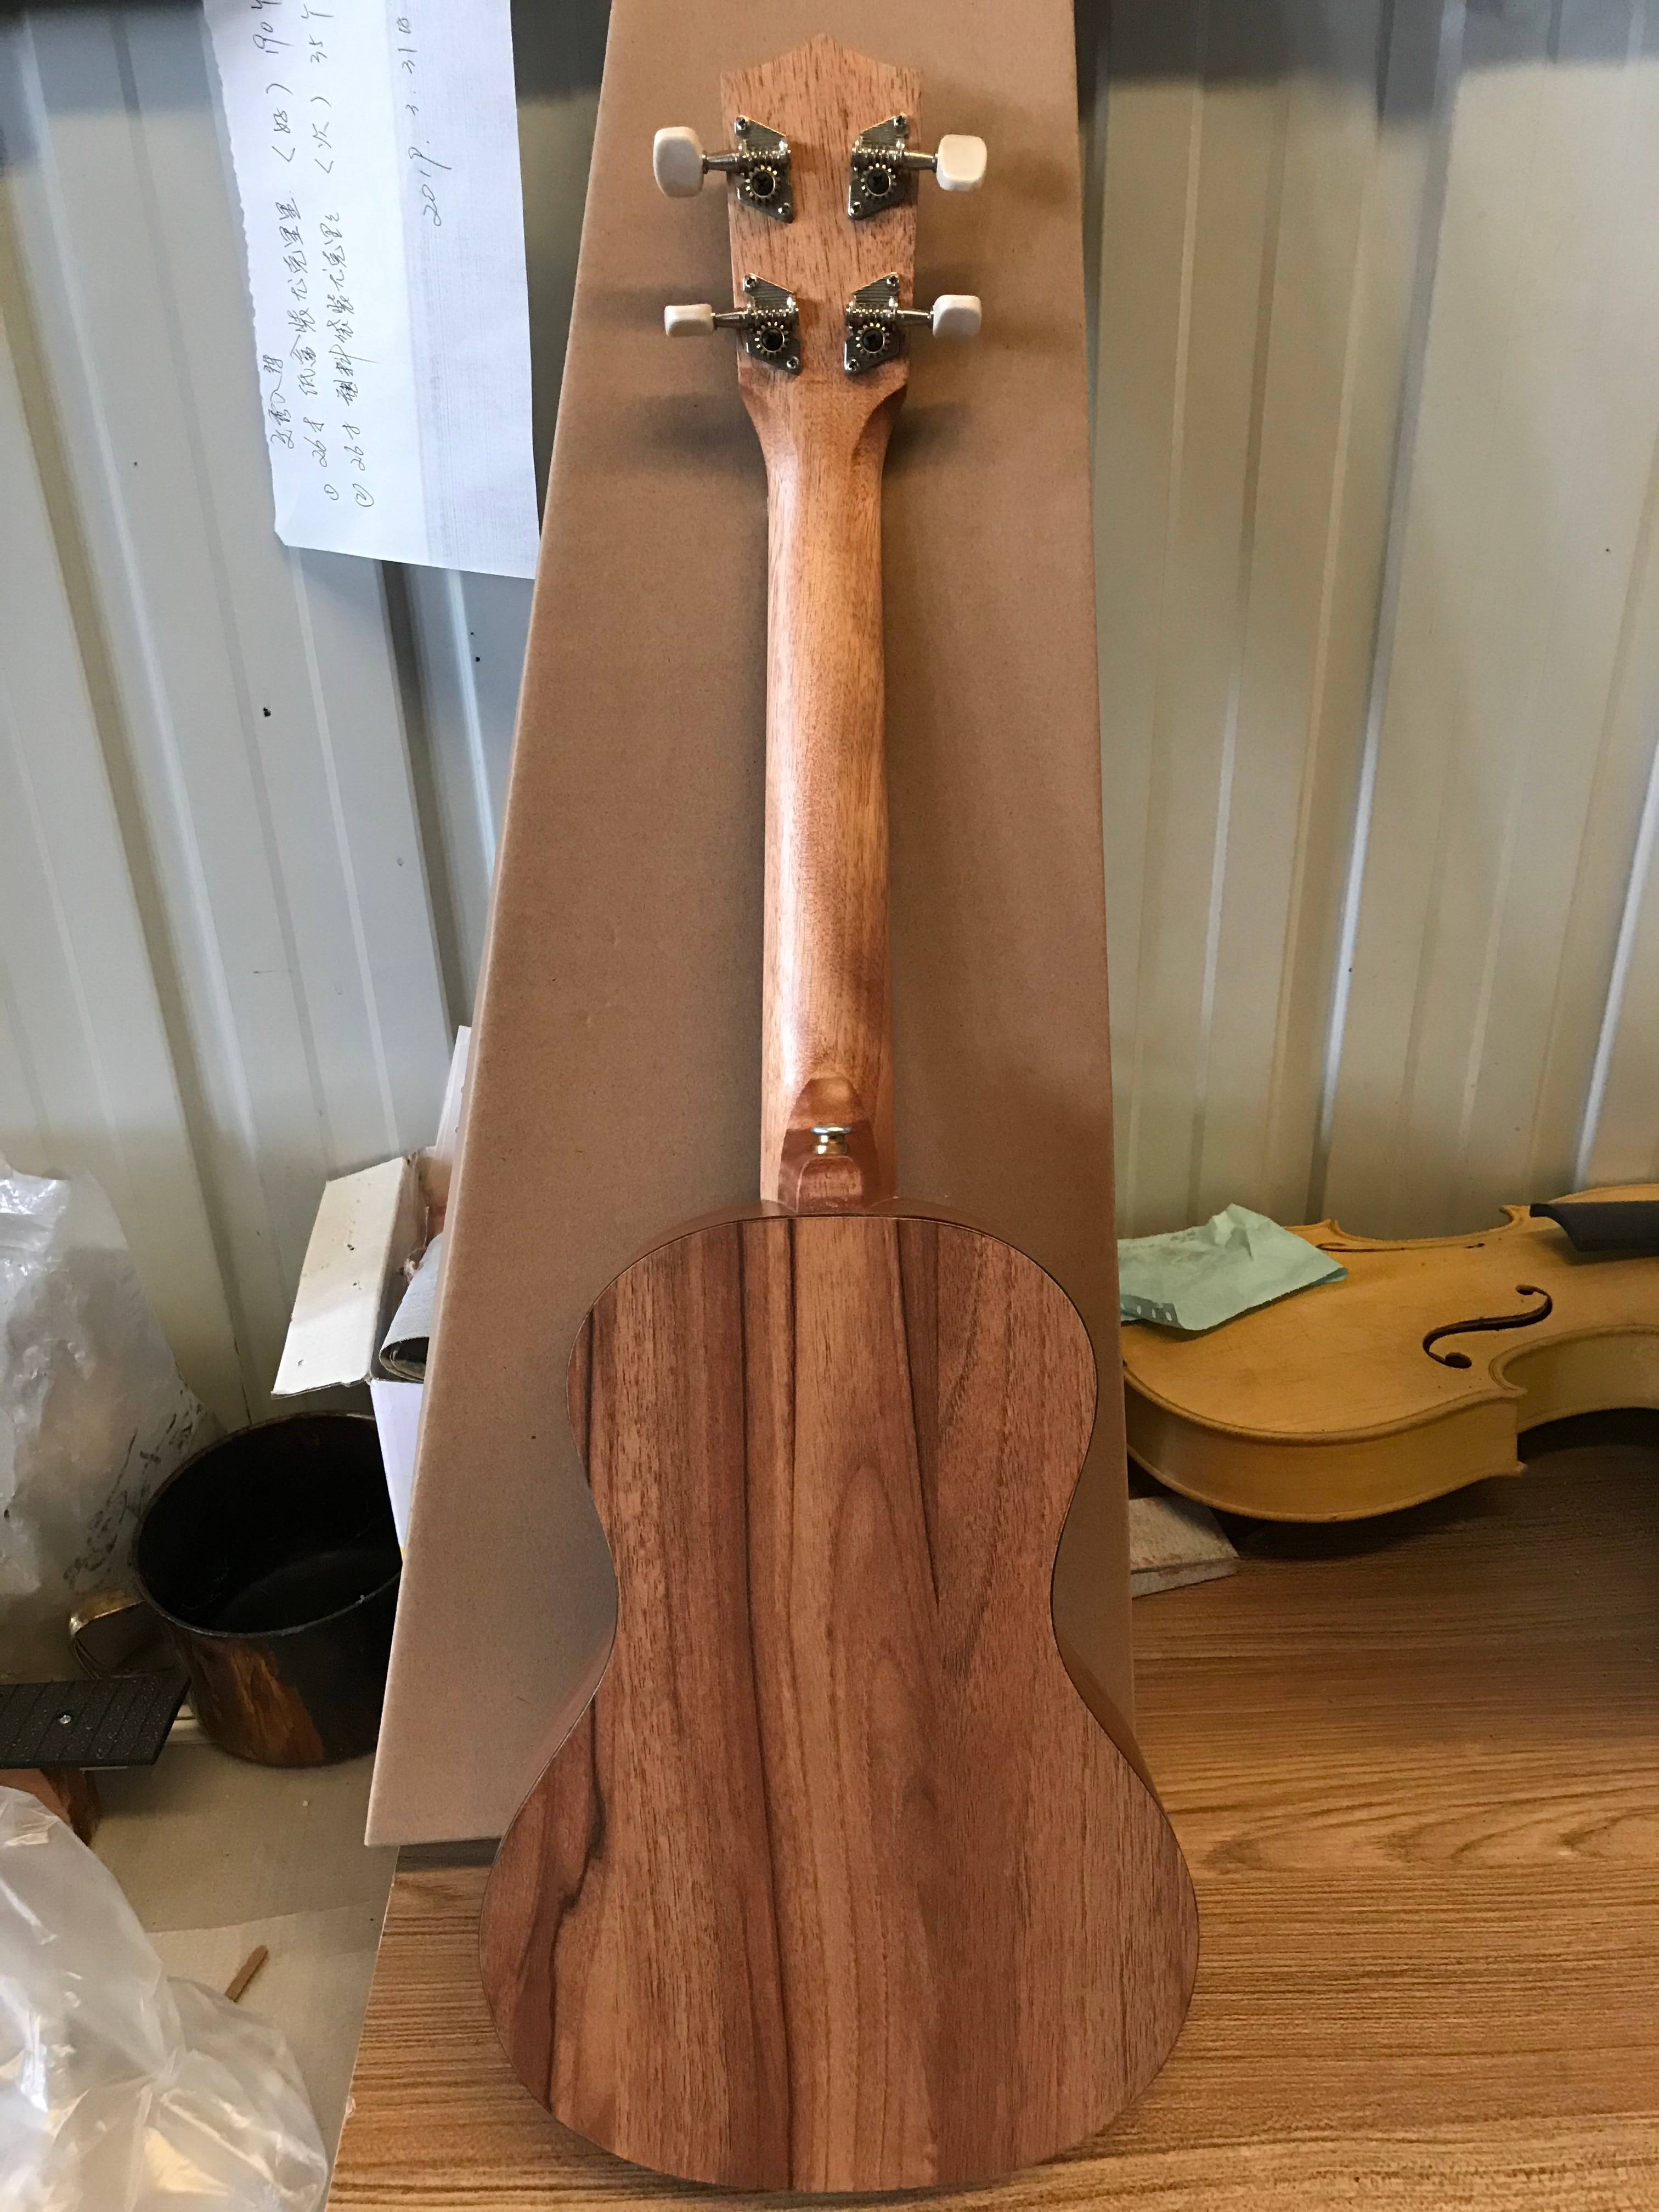 23 Inch All Ukulele Zebrawood Ukeleles Small Guitar Unisex Universal Little Guitar Toy Guitar for Beginners Toddlers Kids enlarge